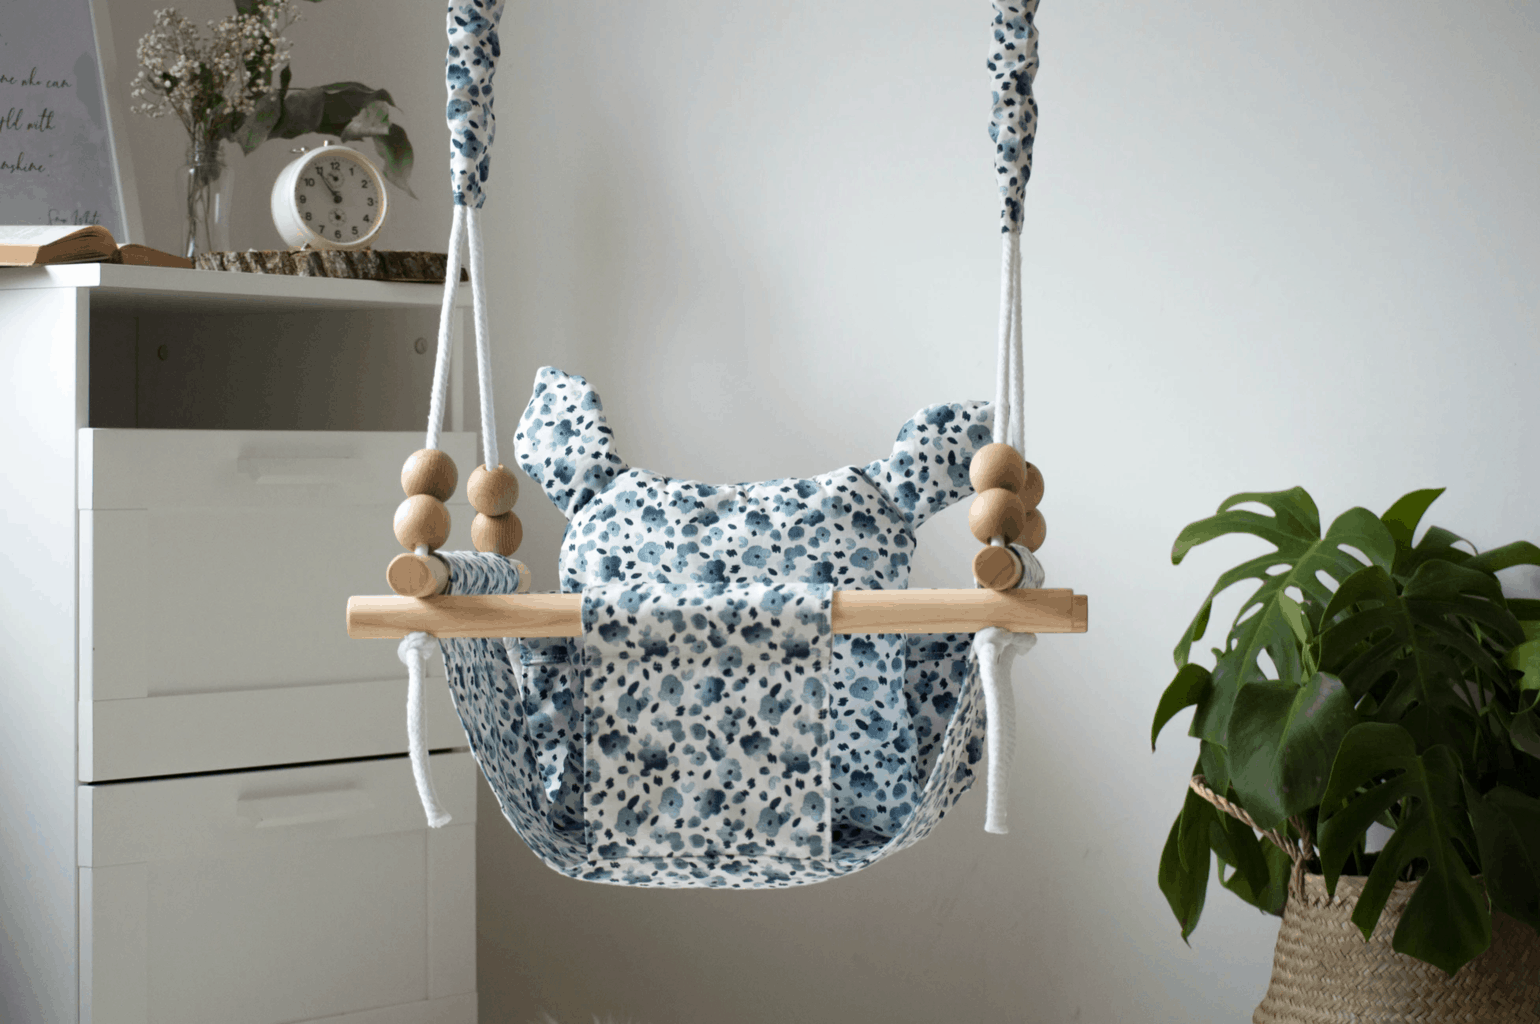 The best baby swing is a convenient and reliable item you should get for your baby to keep them comfortable while sitting down. - Best Baby Swing | Baby Journey